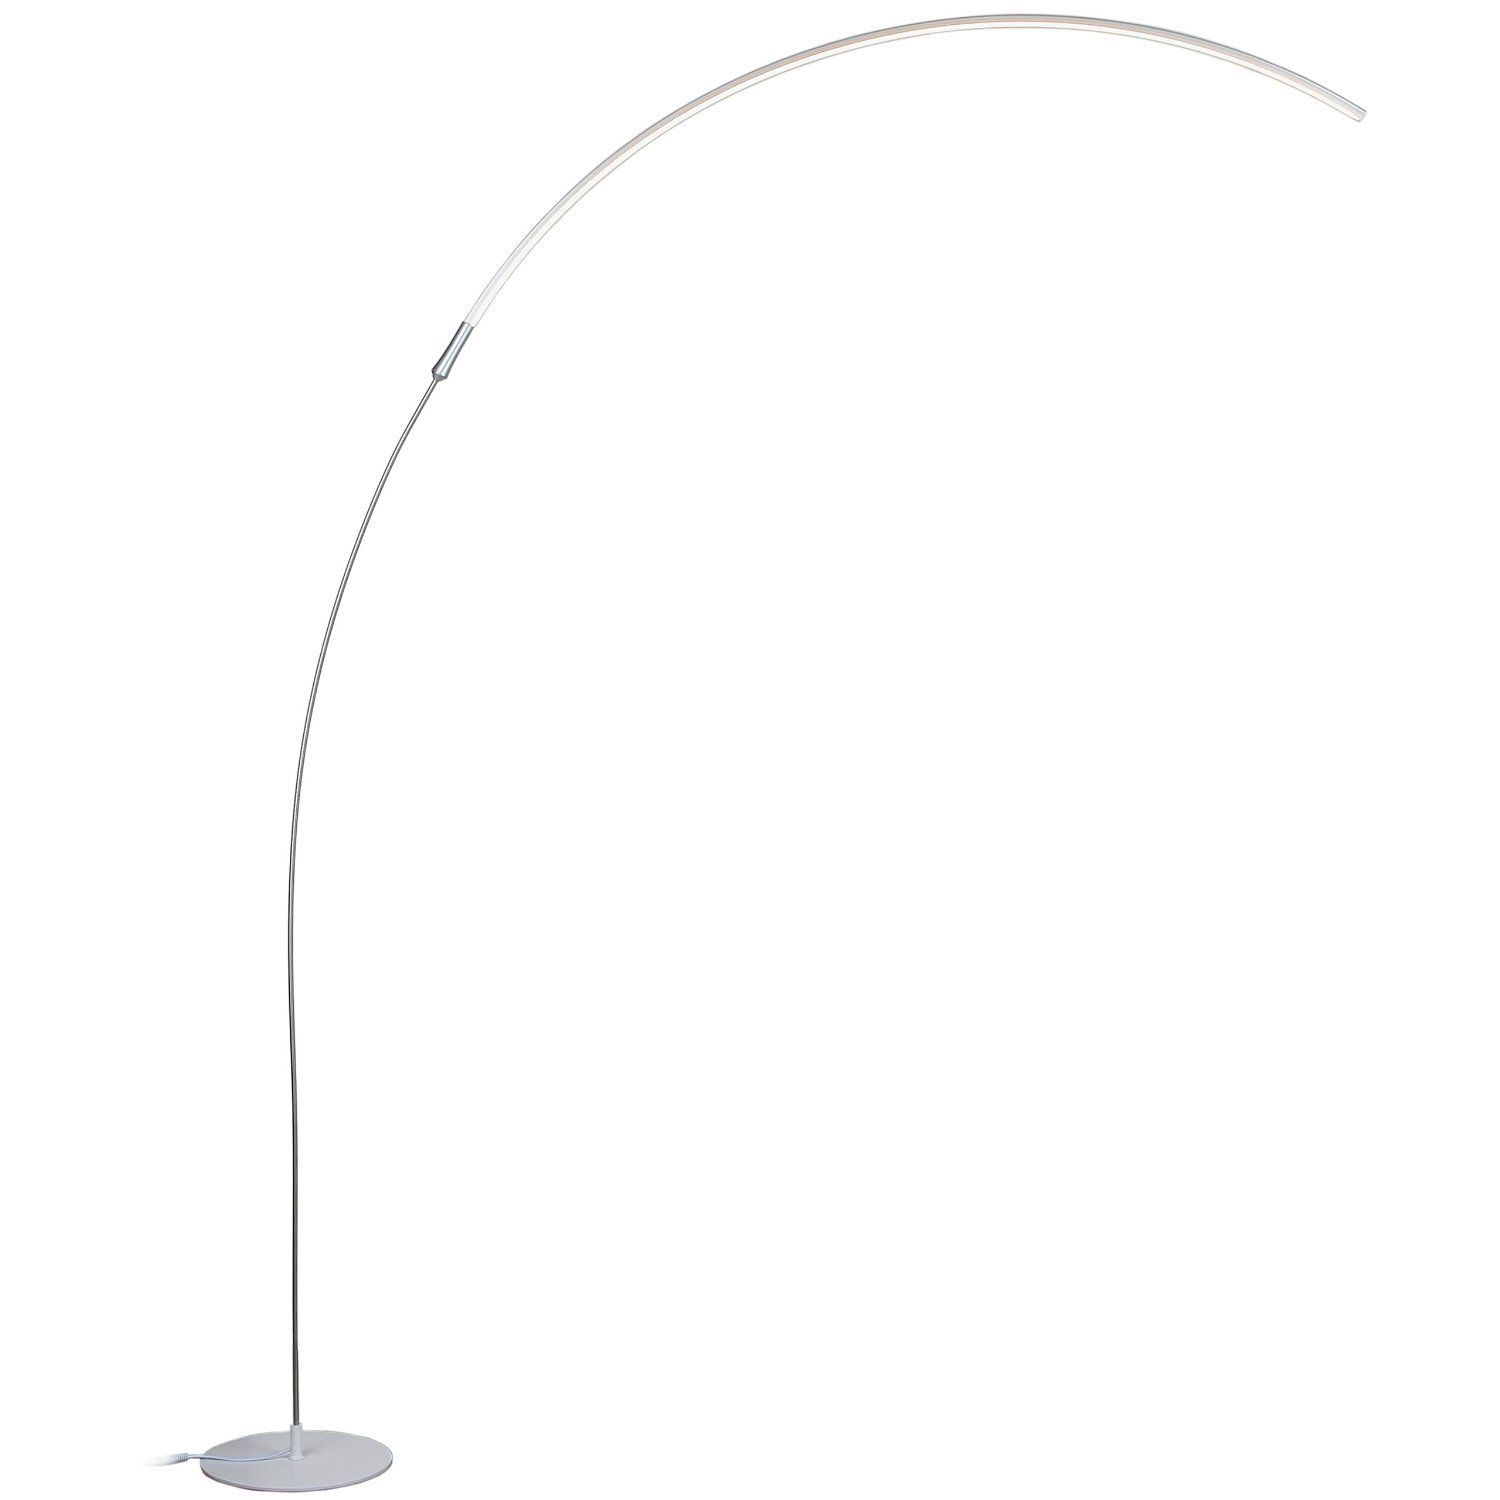 Brightech Sparq Led Arc Floor Lamp Curved Contemporary Minimalist Lighting Design Warm